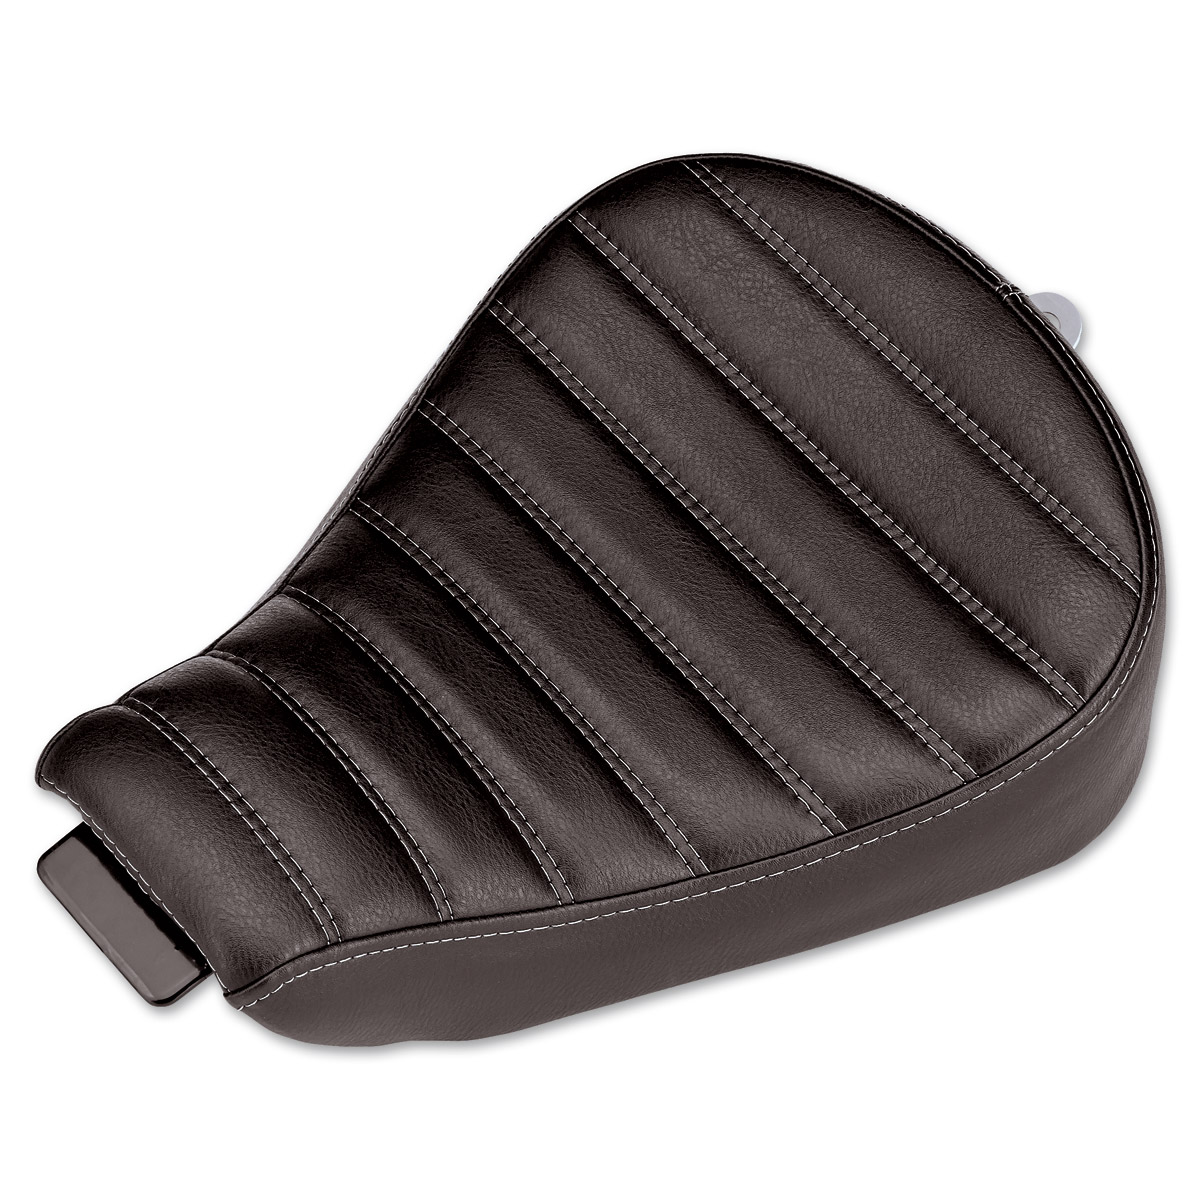 Biltwell Inc. Horizontal Tuck and Roll Sporty-8 Solo Seat